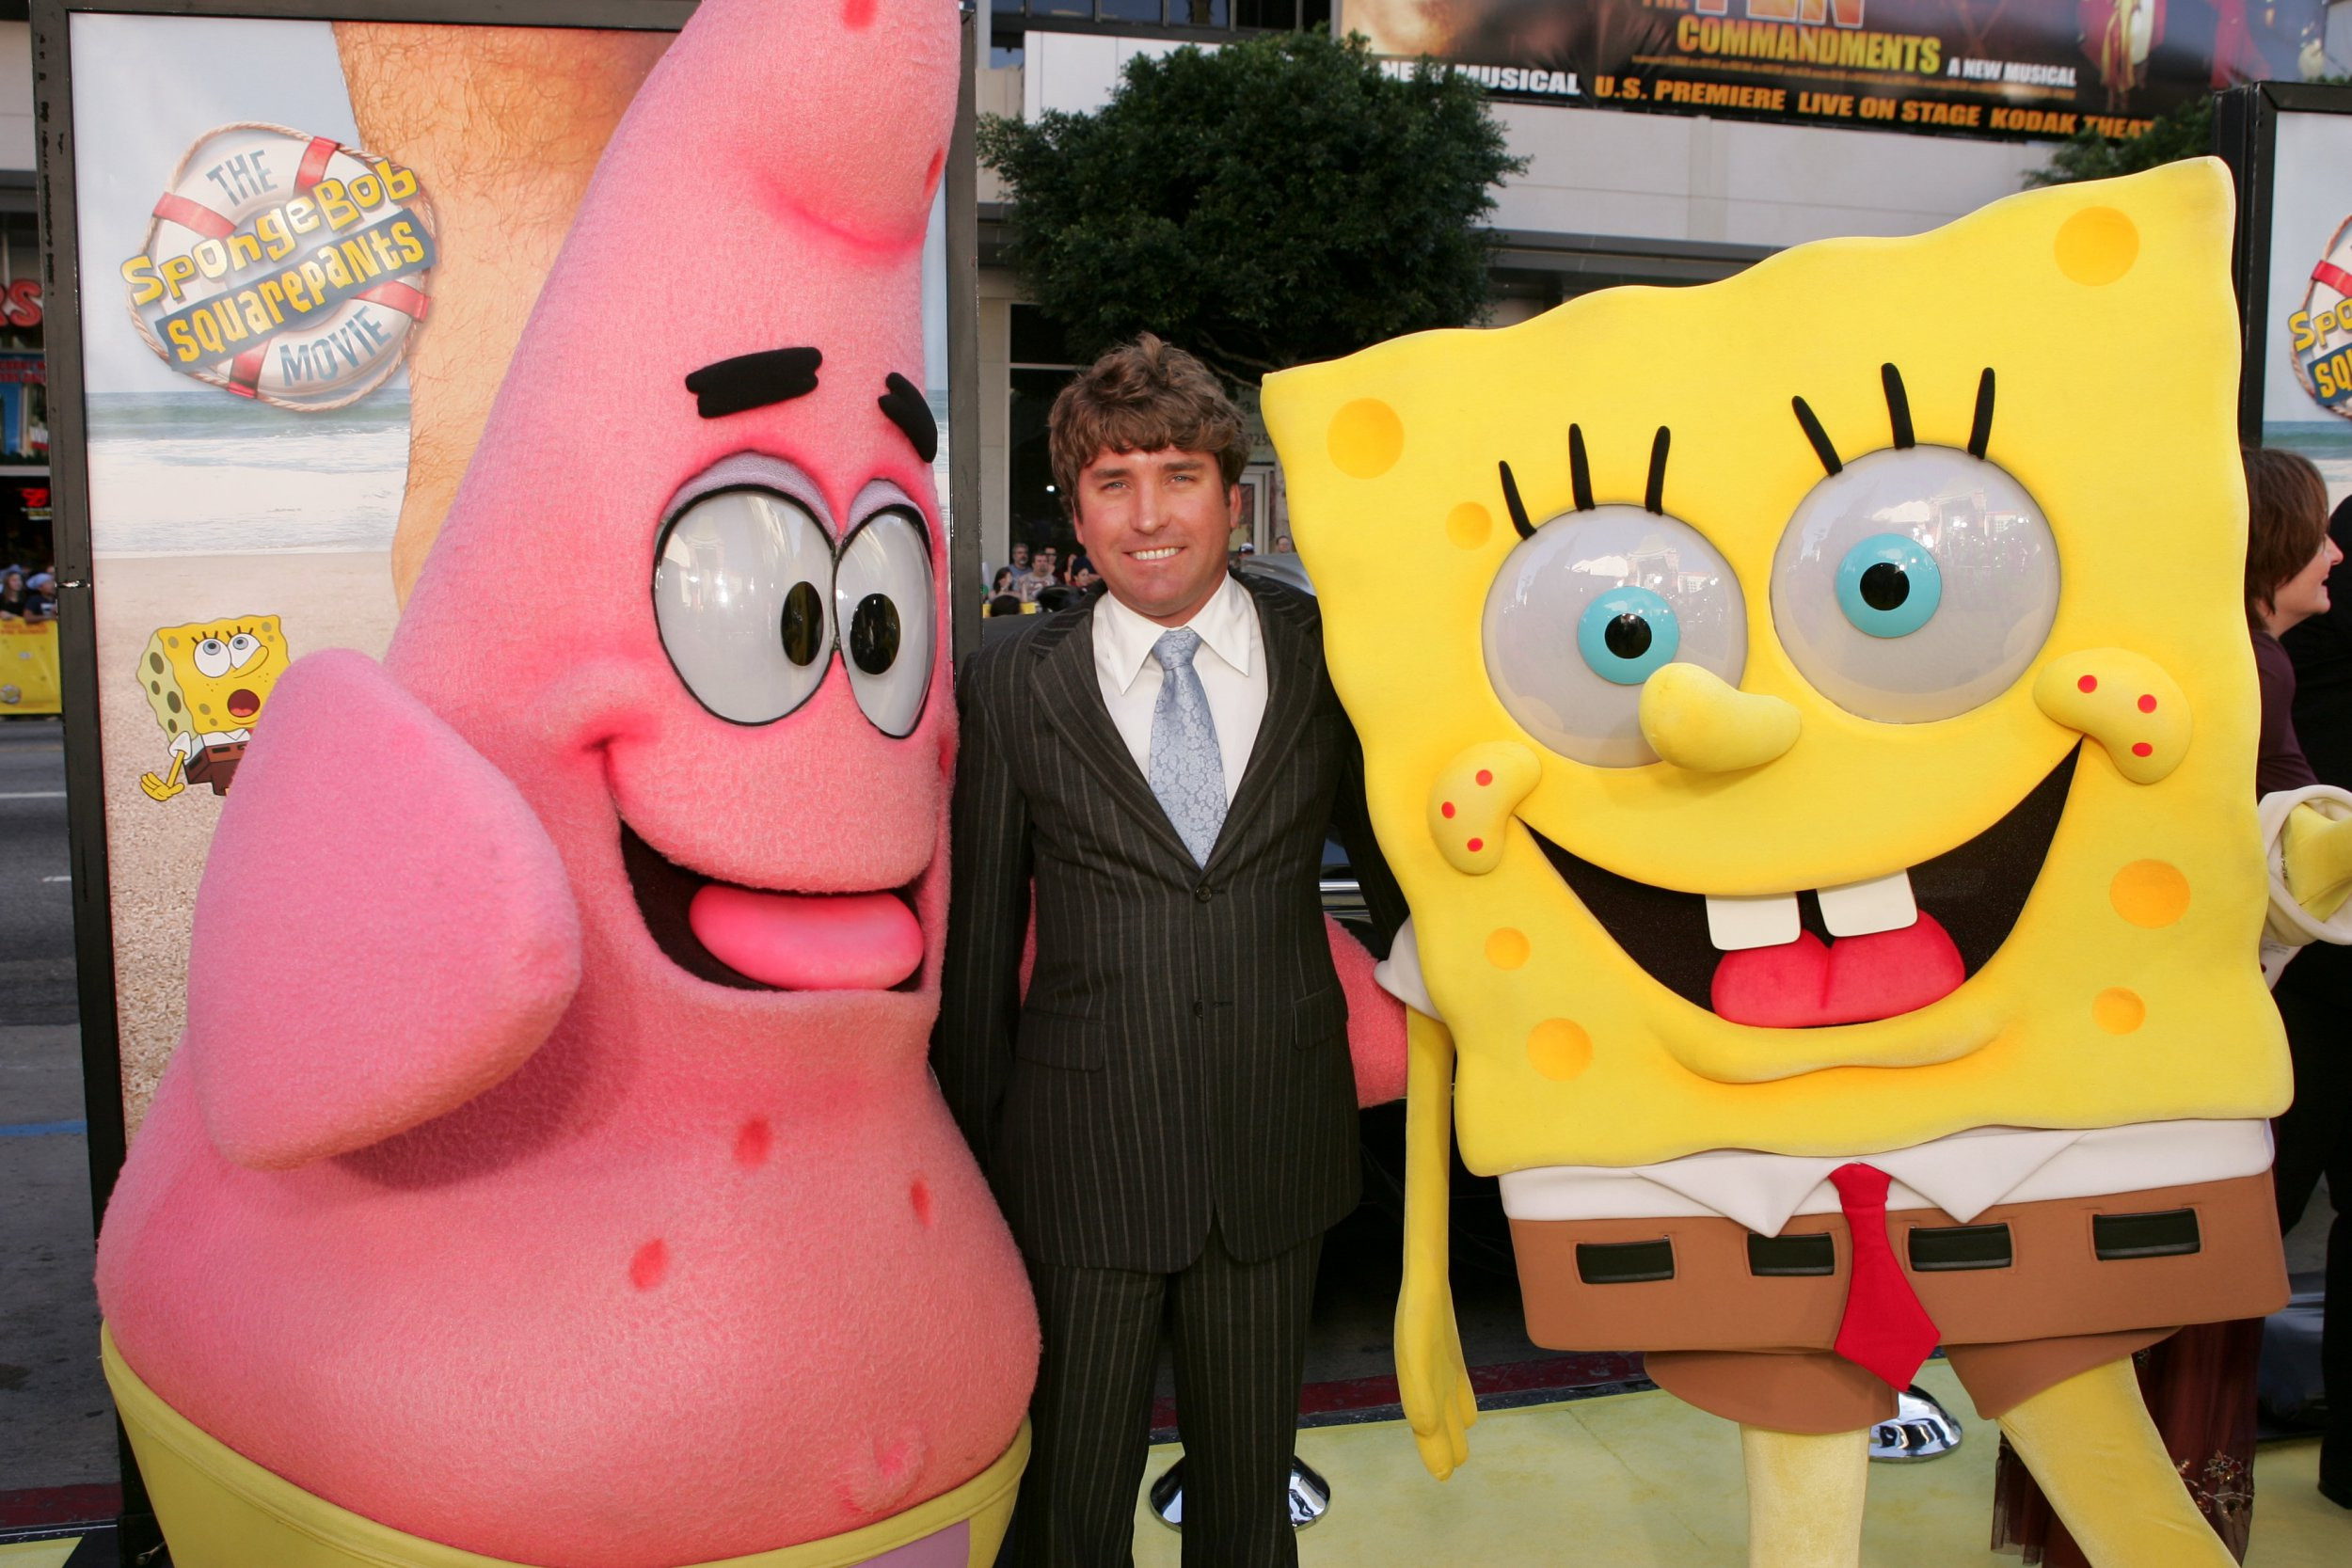 Mandatory Credit: Photo by Bei/REX/Shutterstock (503551bj) Patrick, Director Stephen Hillenburg, and Spongebob Squarepants 'The Spongebob Squarepants Movie' film premiere, Los Angeles, America - 14 Nov 2004 November 14, 2004 Hollywood, CA Patrick, Director Stephen Hillenburg, and Spongebob Squarepants Paramount Pictures presents the world premiere of THE SPONGEBOB SQUAREPANTS MOVIE held at the Grauman's Chinese Theater. Photo by Eric Charbonneau ? Berliner Studio / BEImages